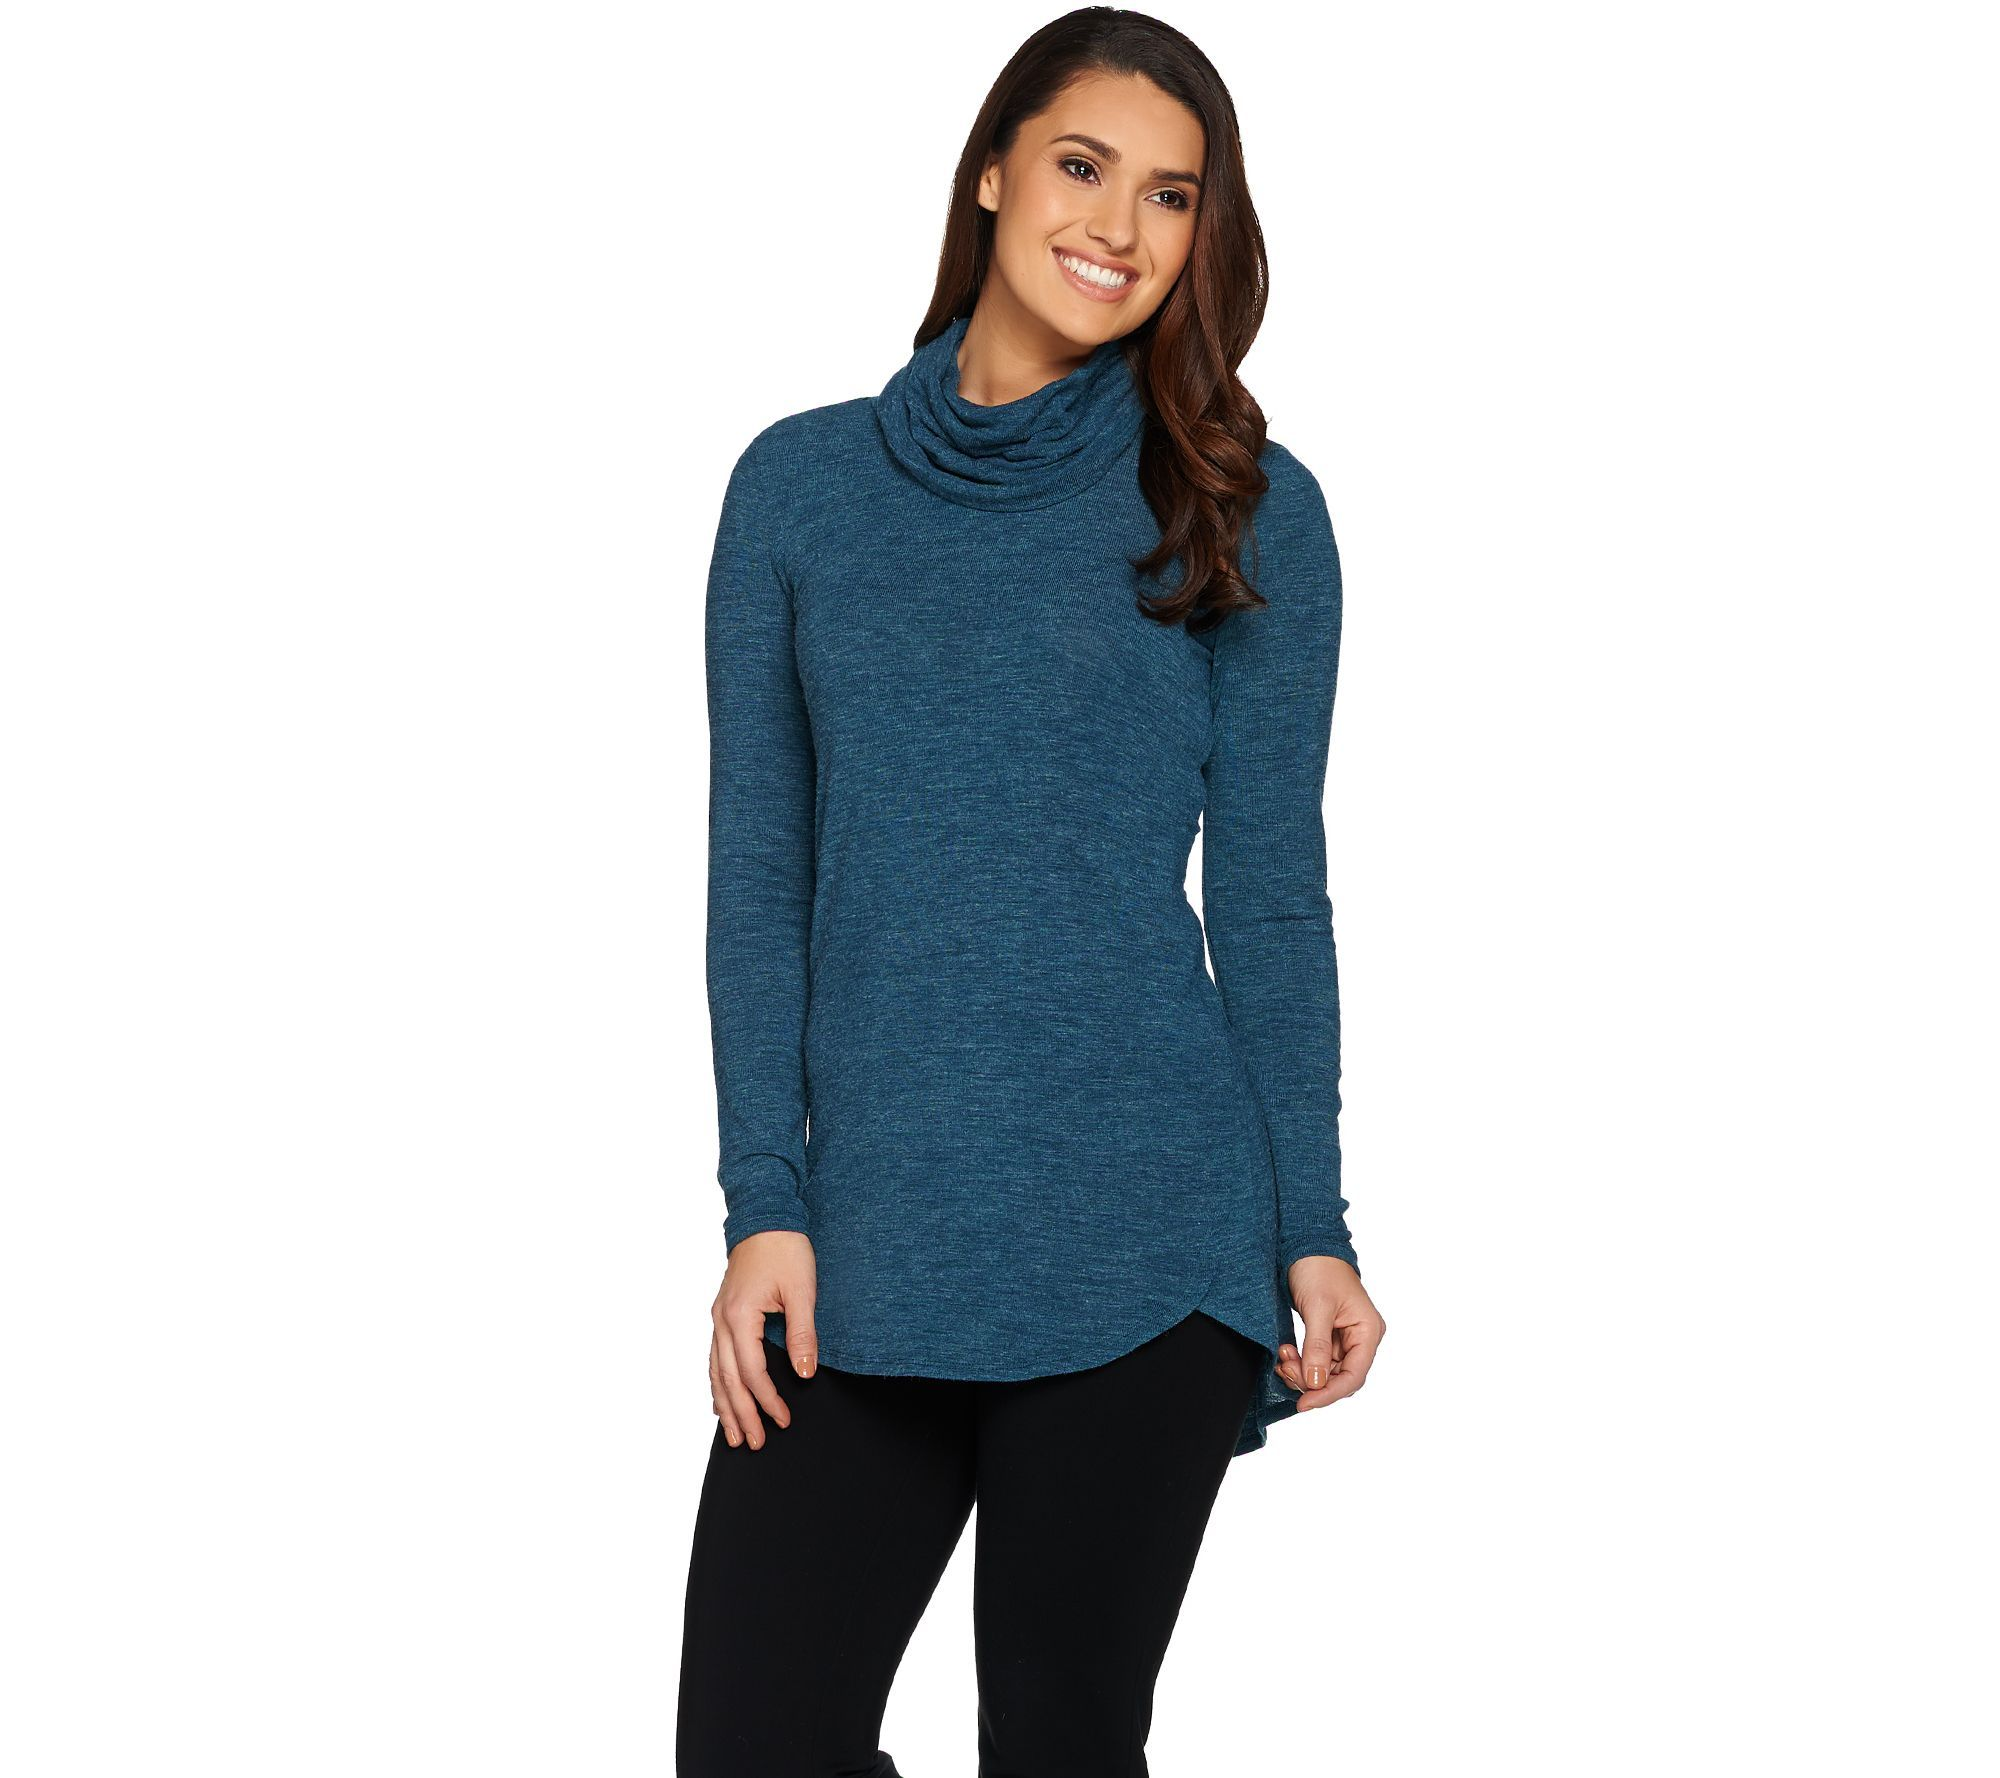 QVC LISA RINNA Cowl neck lightweight sweater $39.94 | Fashion and ...